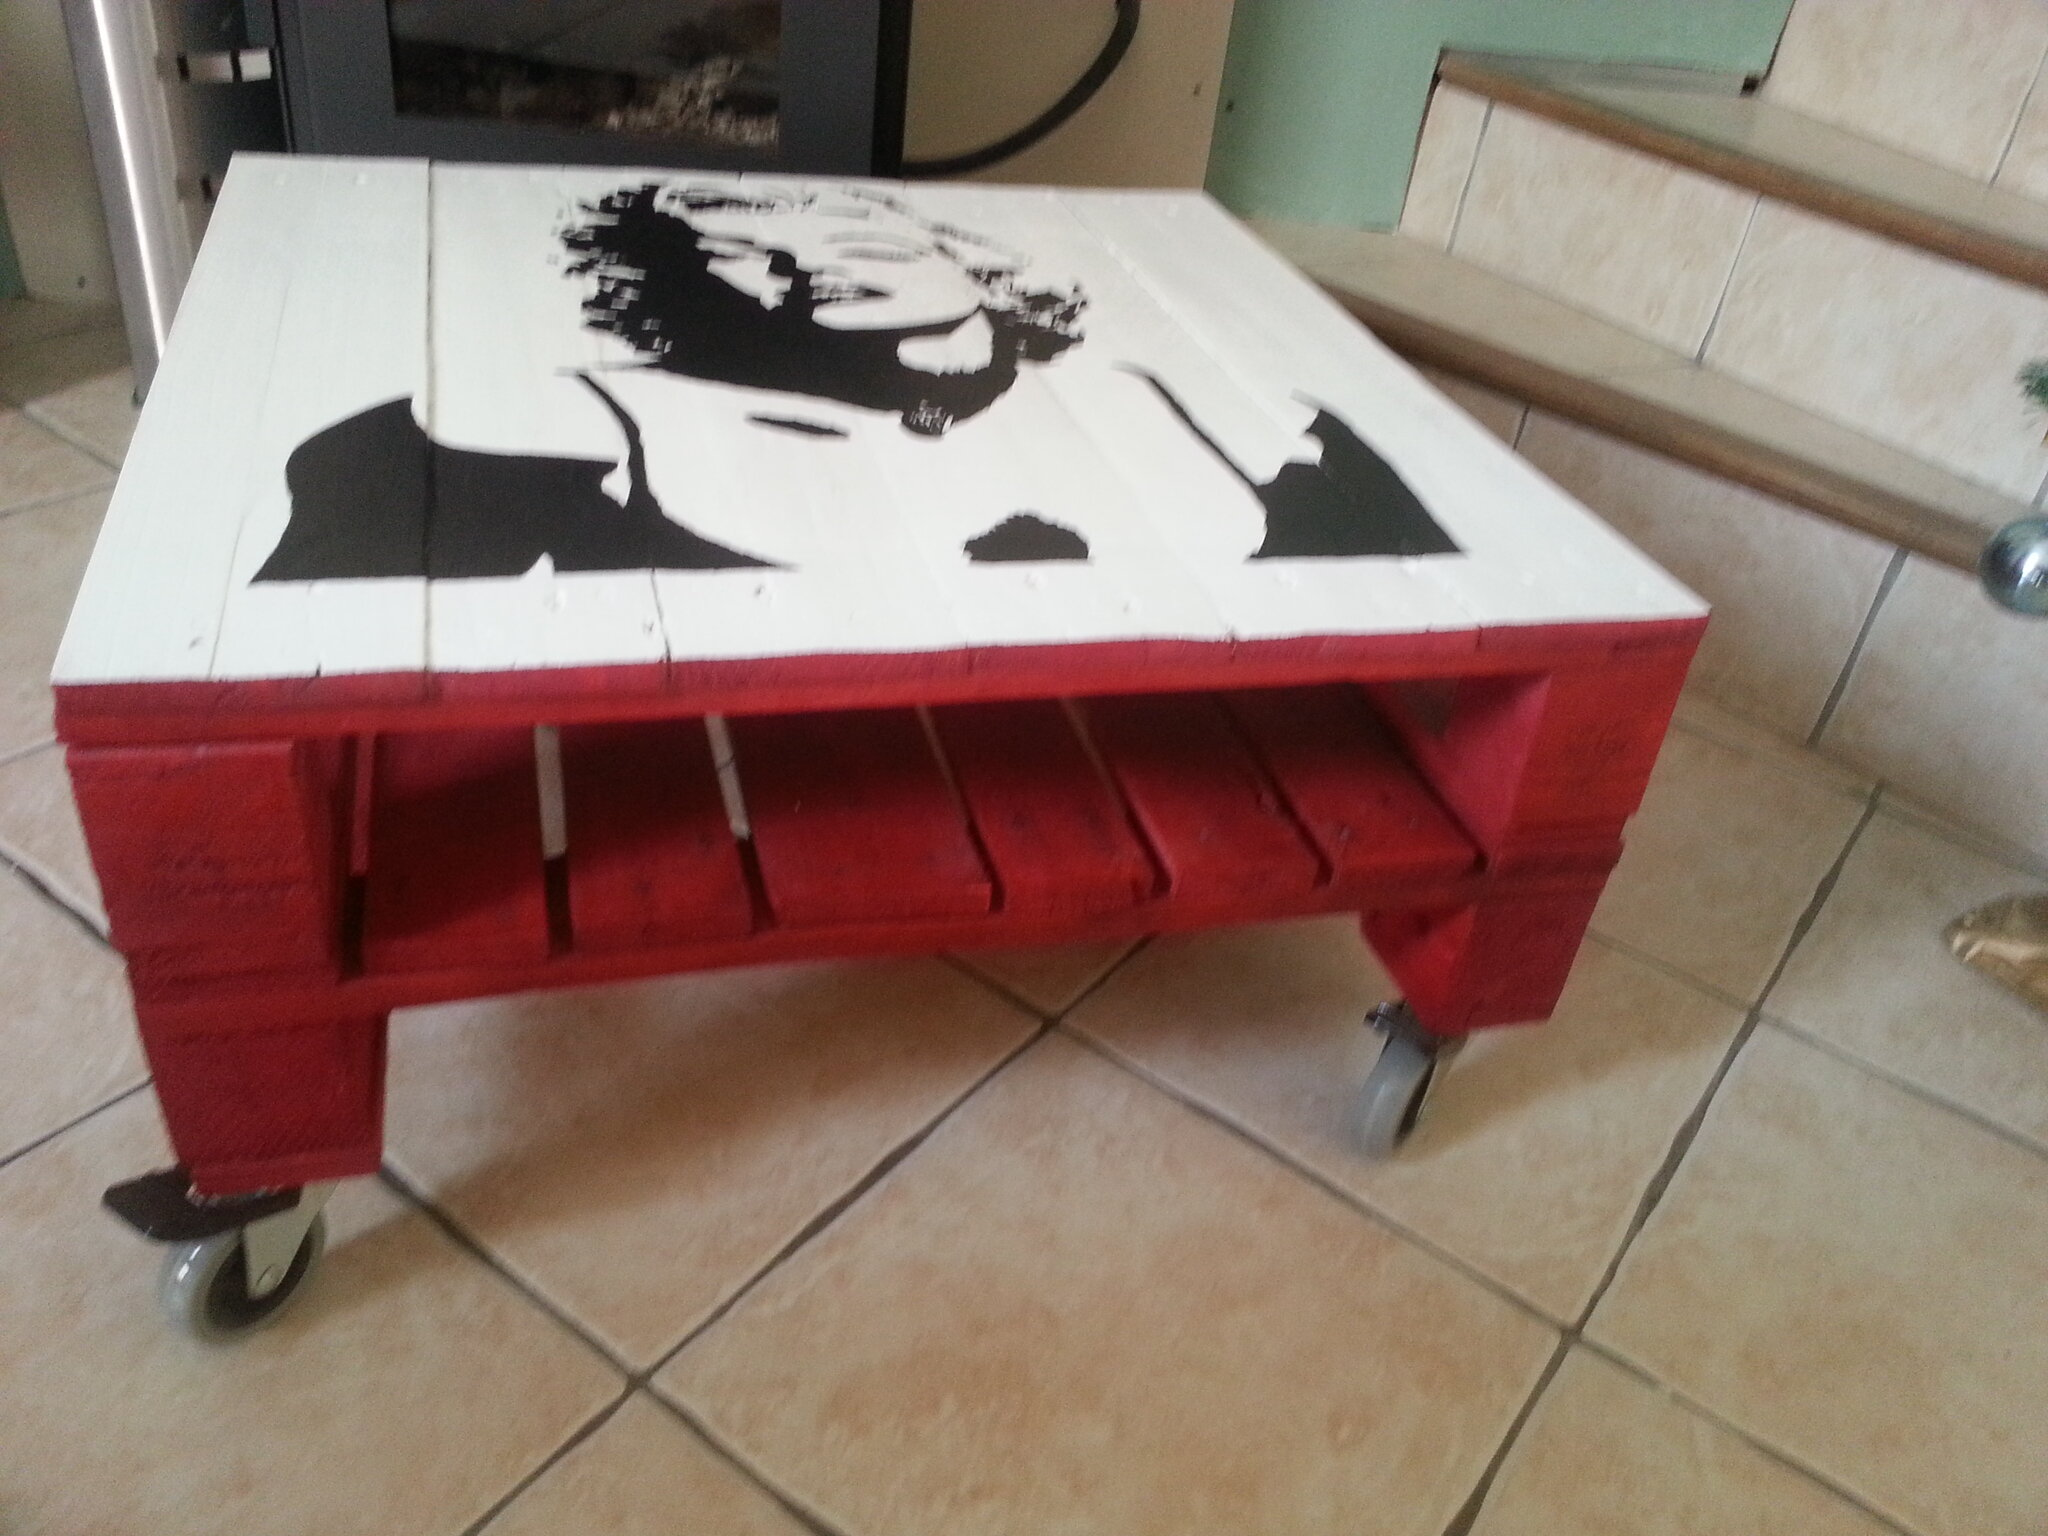 Table basse marylin monroe en palette en bois r cup 39 art d co - Table de salon avec palette ...